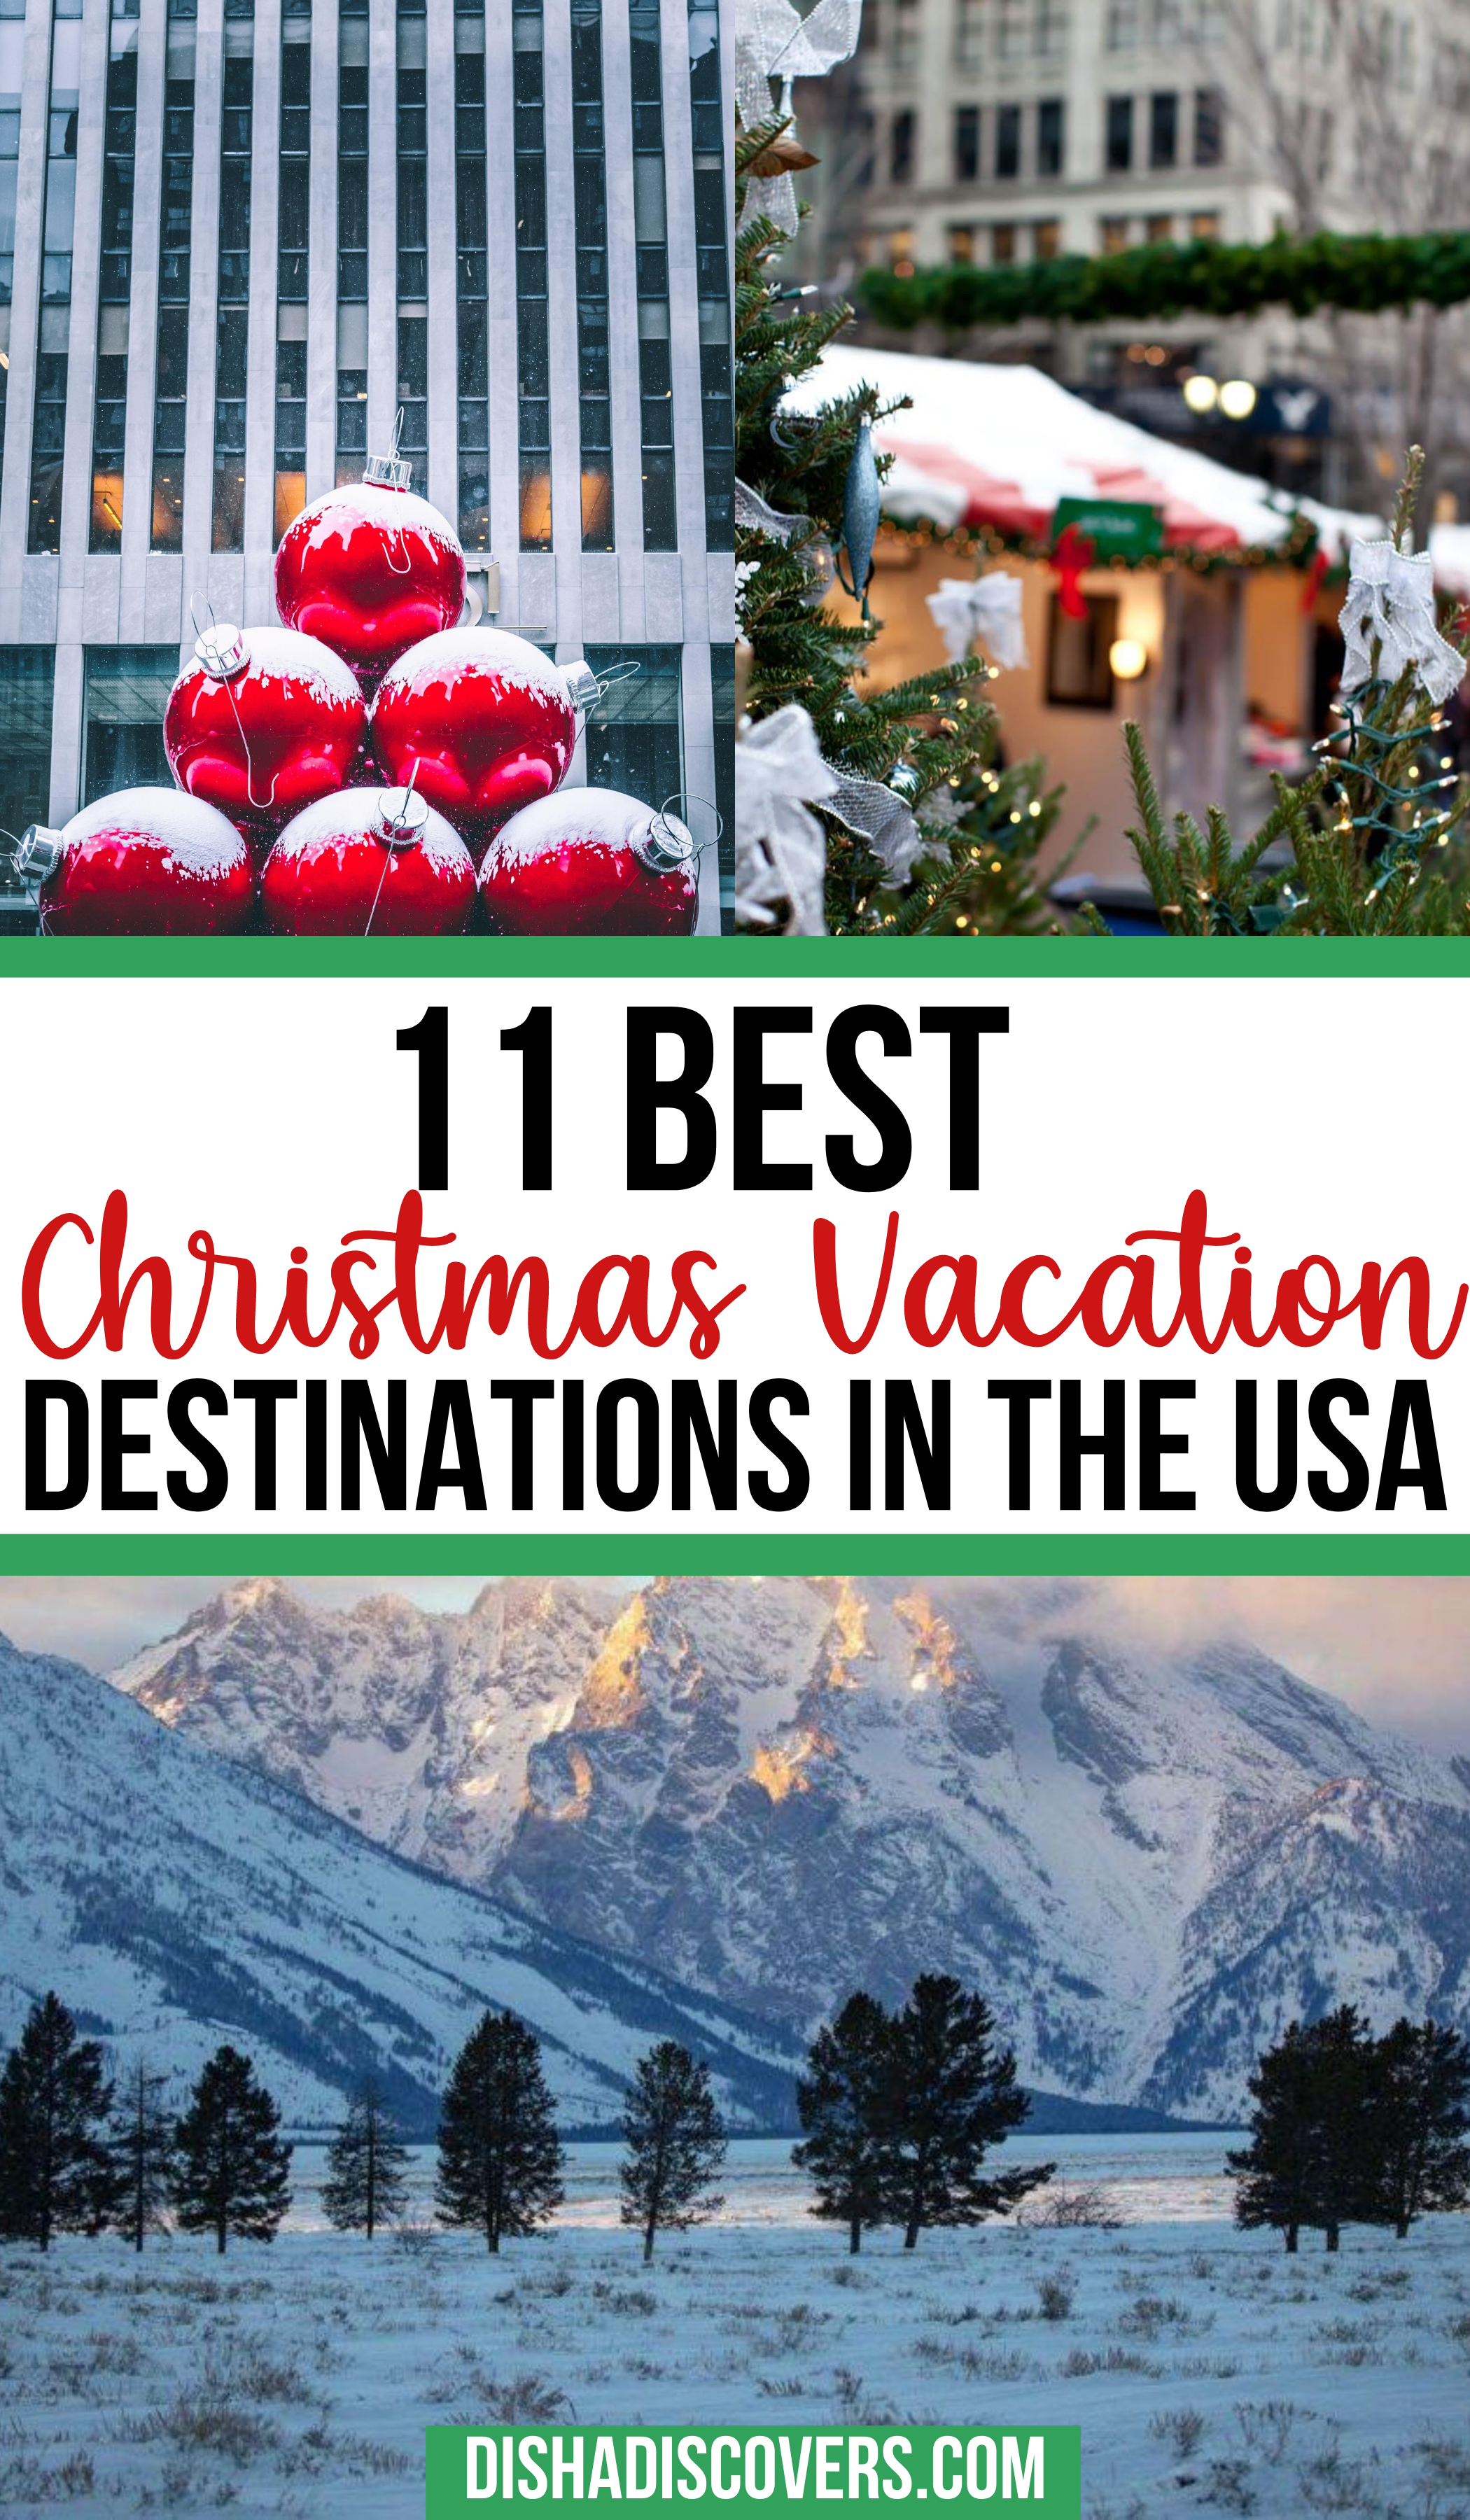 Usa Christmas Destinations 11 Of The Best Holiday Getaways In America In 2020 Christmas Vacation Destinations Christmas Travel Travel Usa